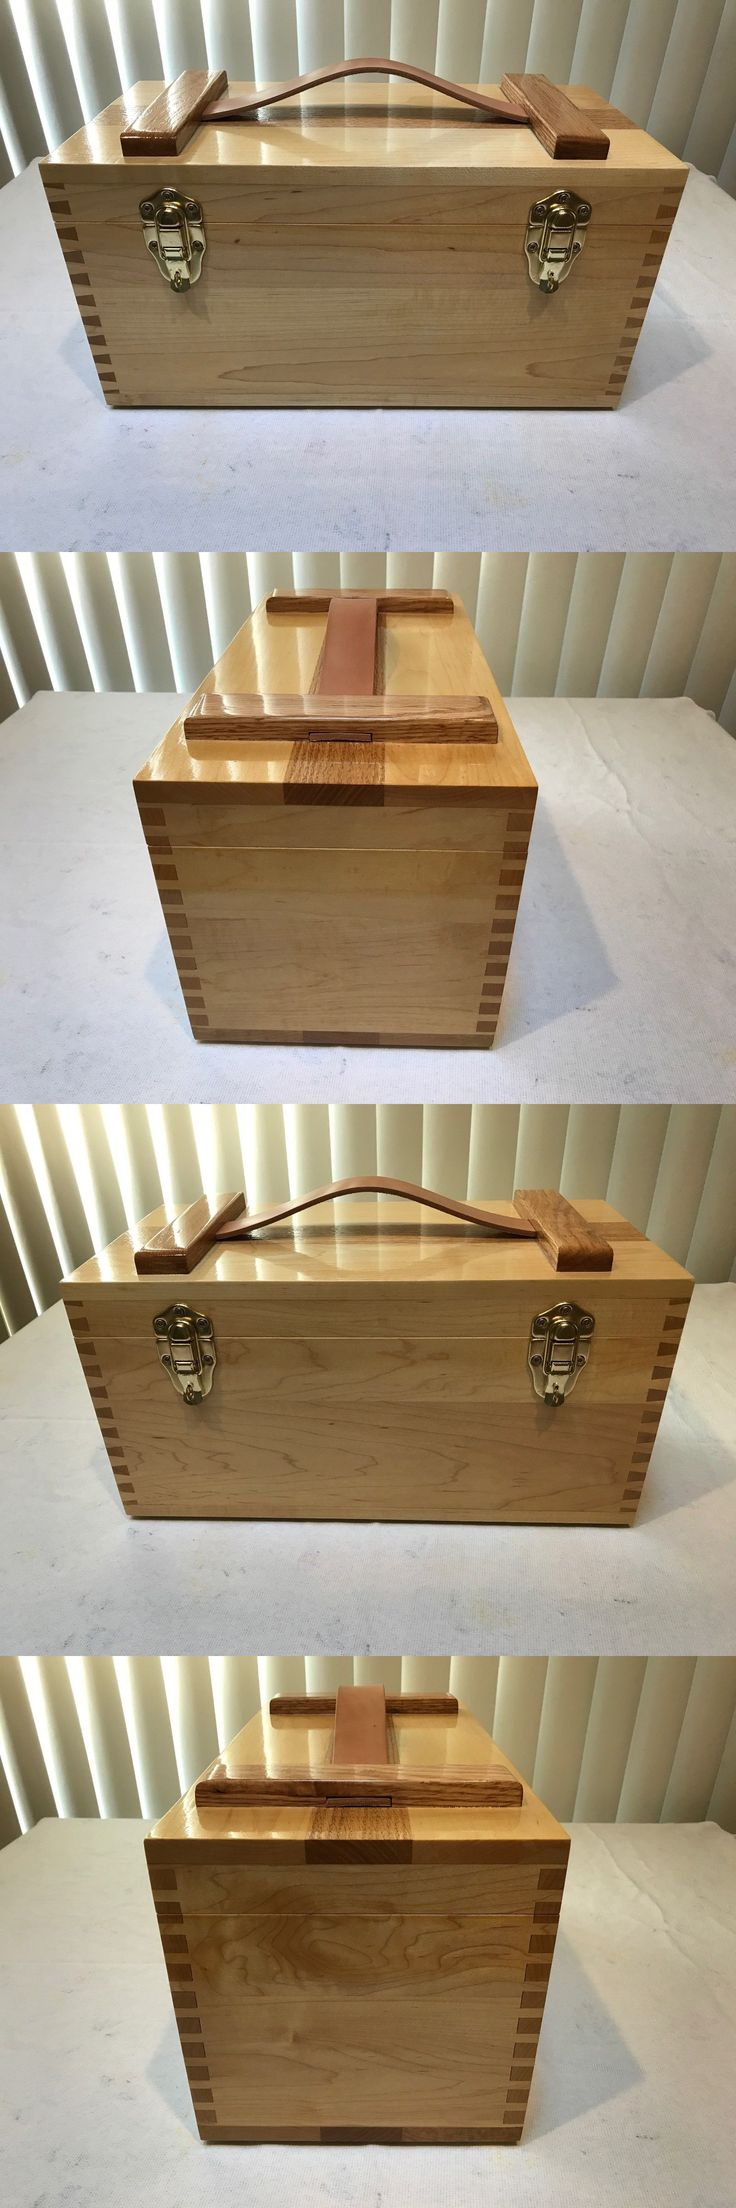 Tackle Boxes and Bags 22696: Handcrafted Wood Fishing Tackle Box -> BUY IT NOW ONLY: $120 on eBay!